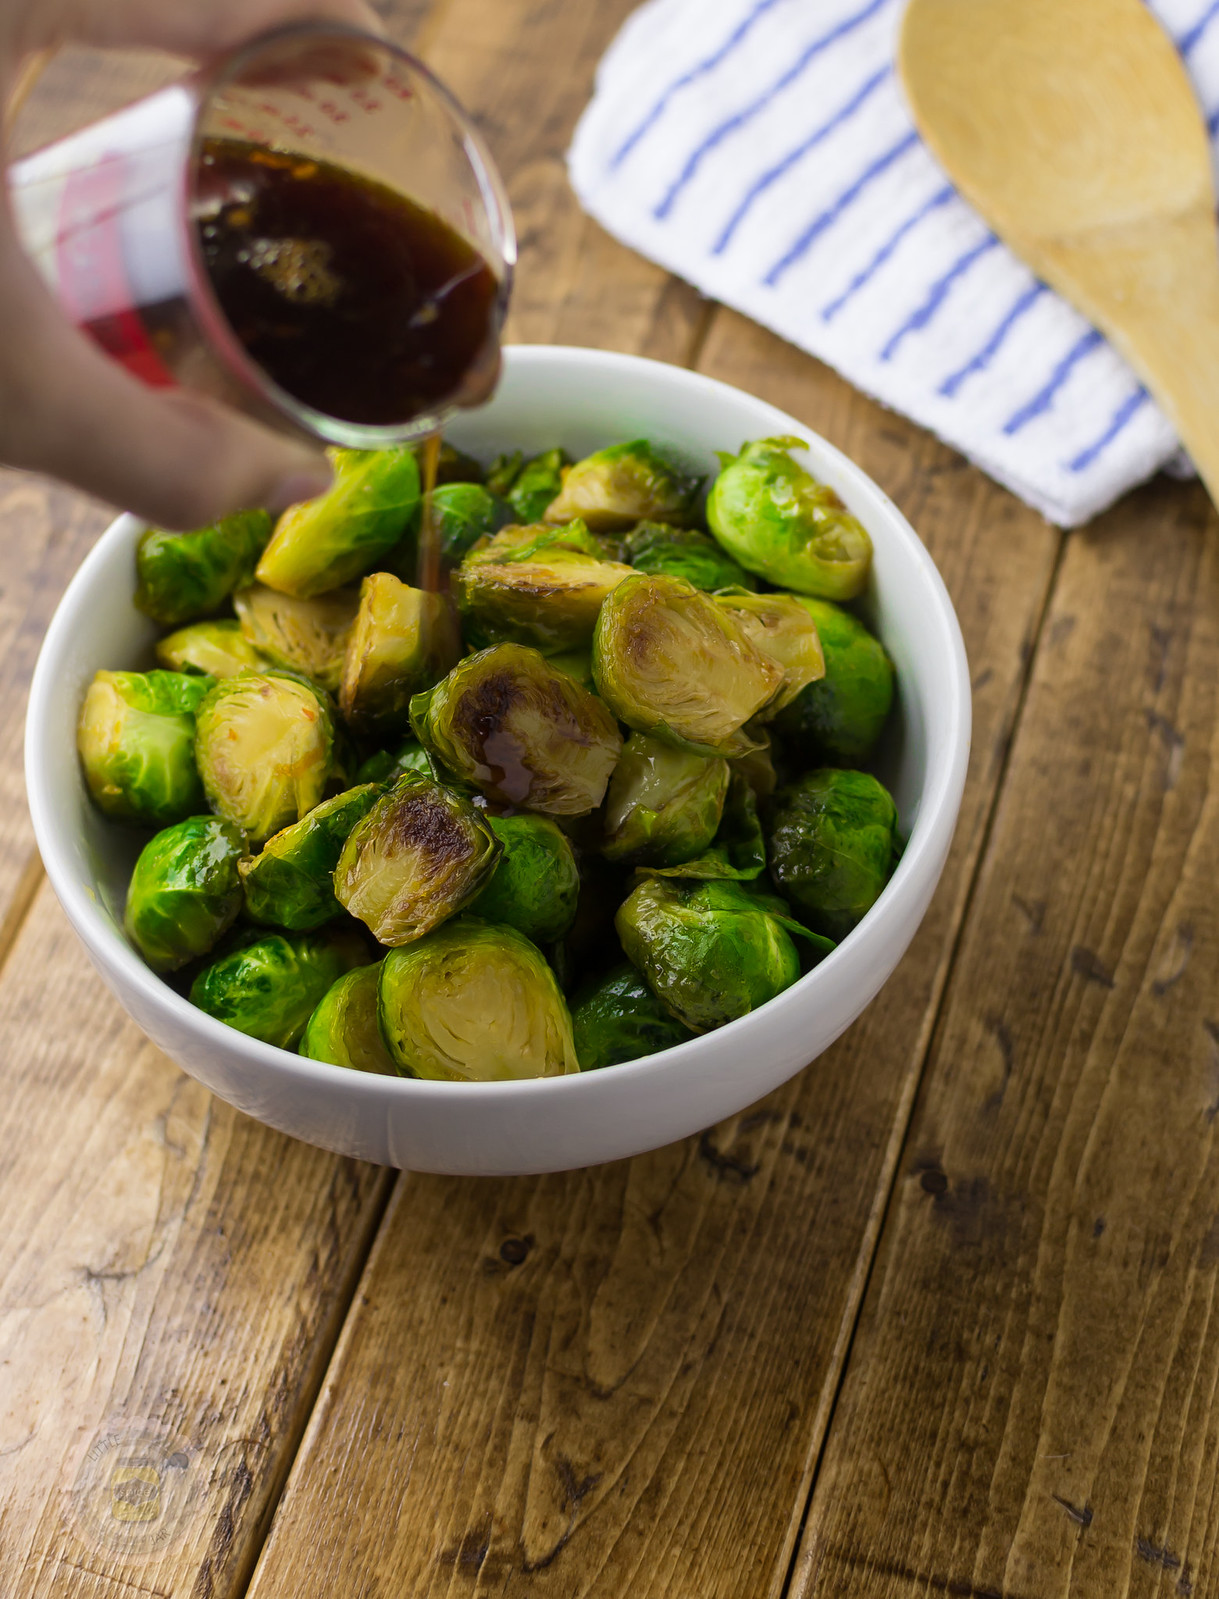 pouring prepared sauce from measuring cup over Brussel sprouts in white bowl on wood surface